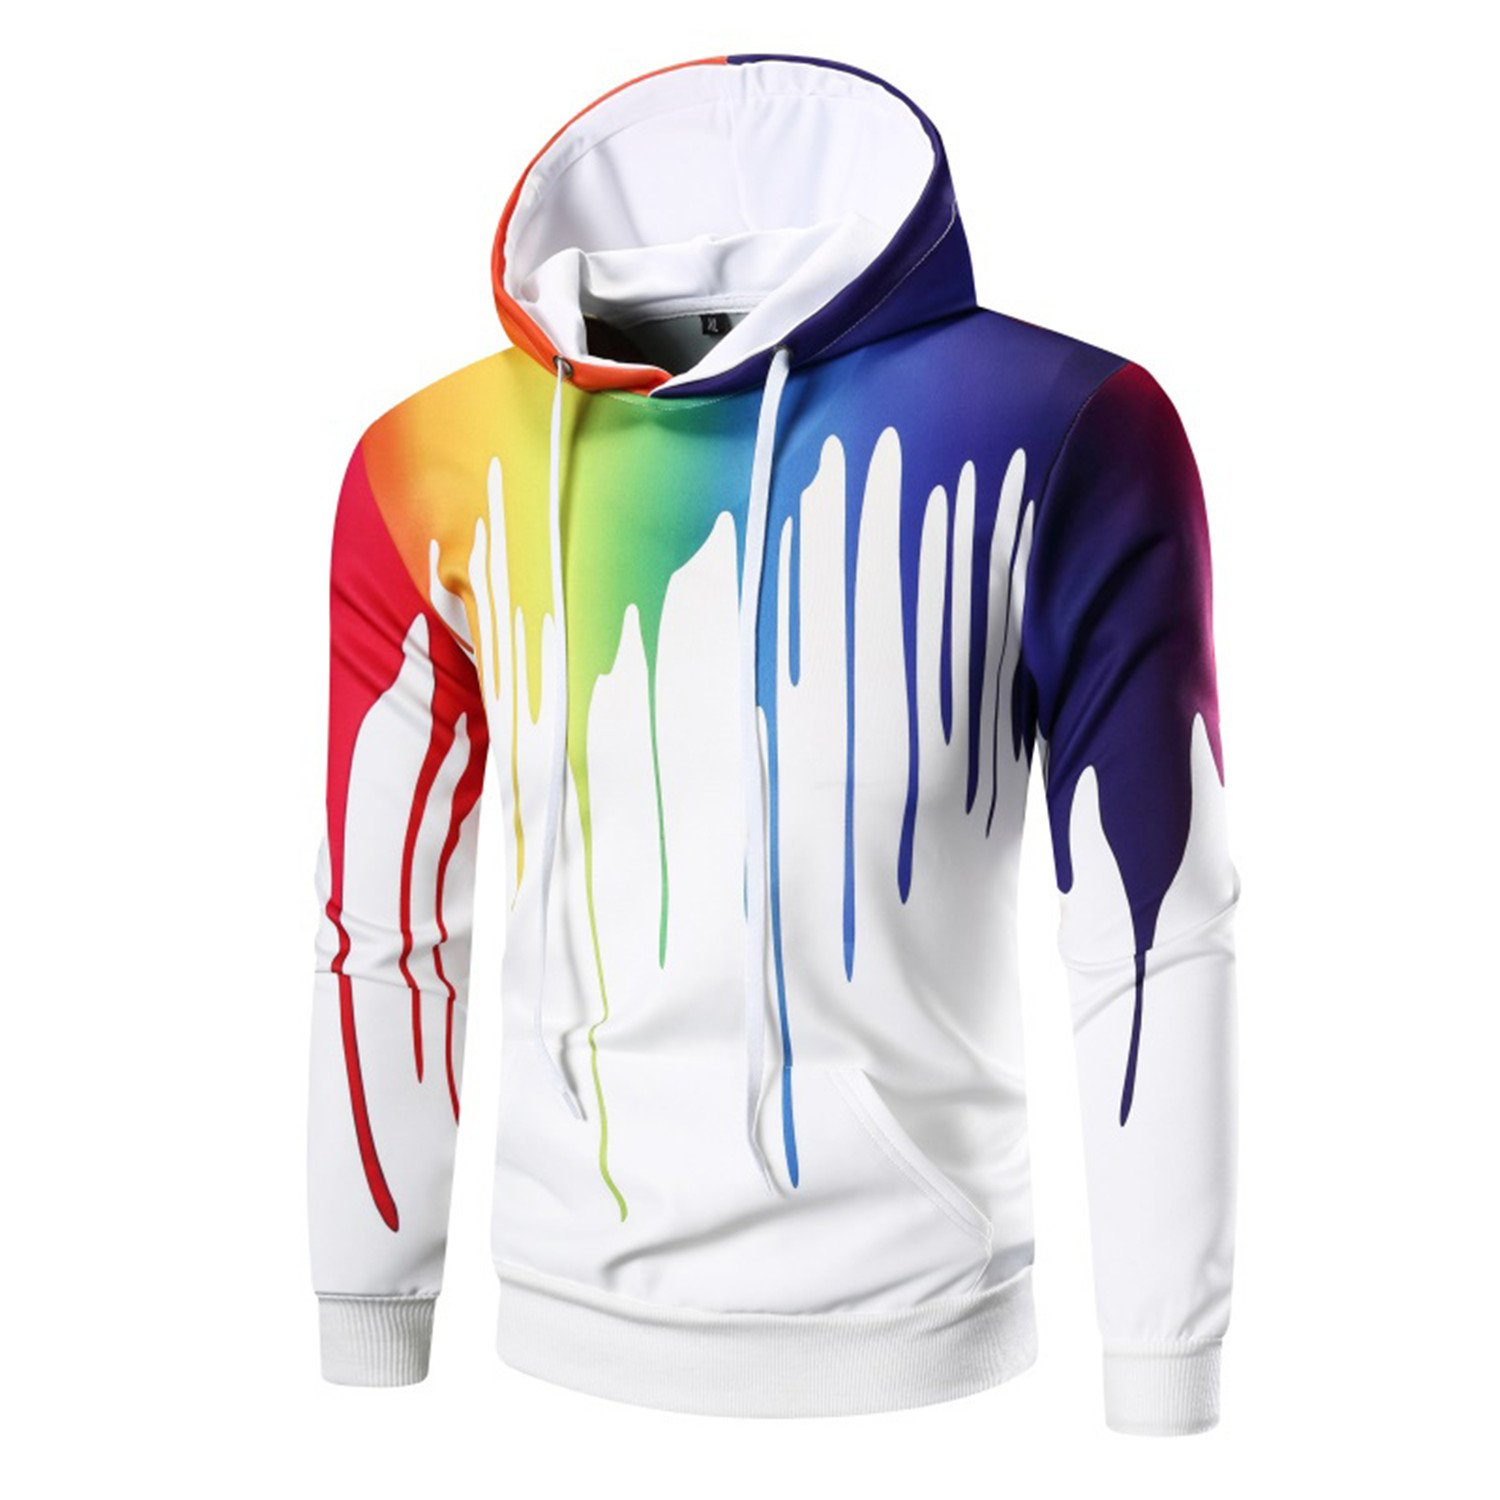 Matterin Christiao New Gradient Hoodie Men Multicolor Sweatshirts Mens Plus Size Hooded Pullovers 3D Inks Printed Tops at Amazon Mens Clothing store: